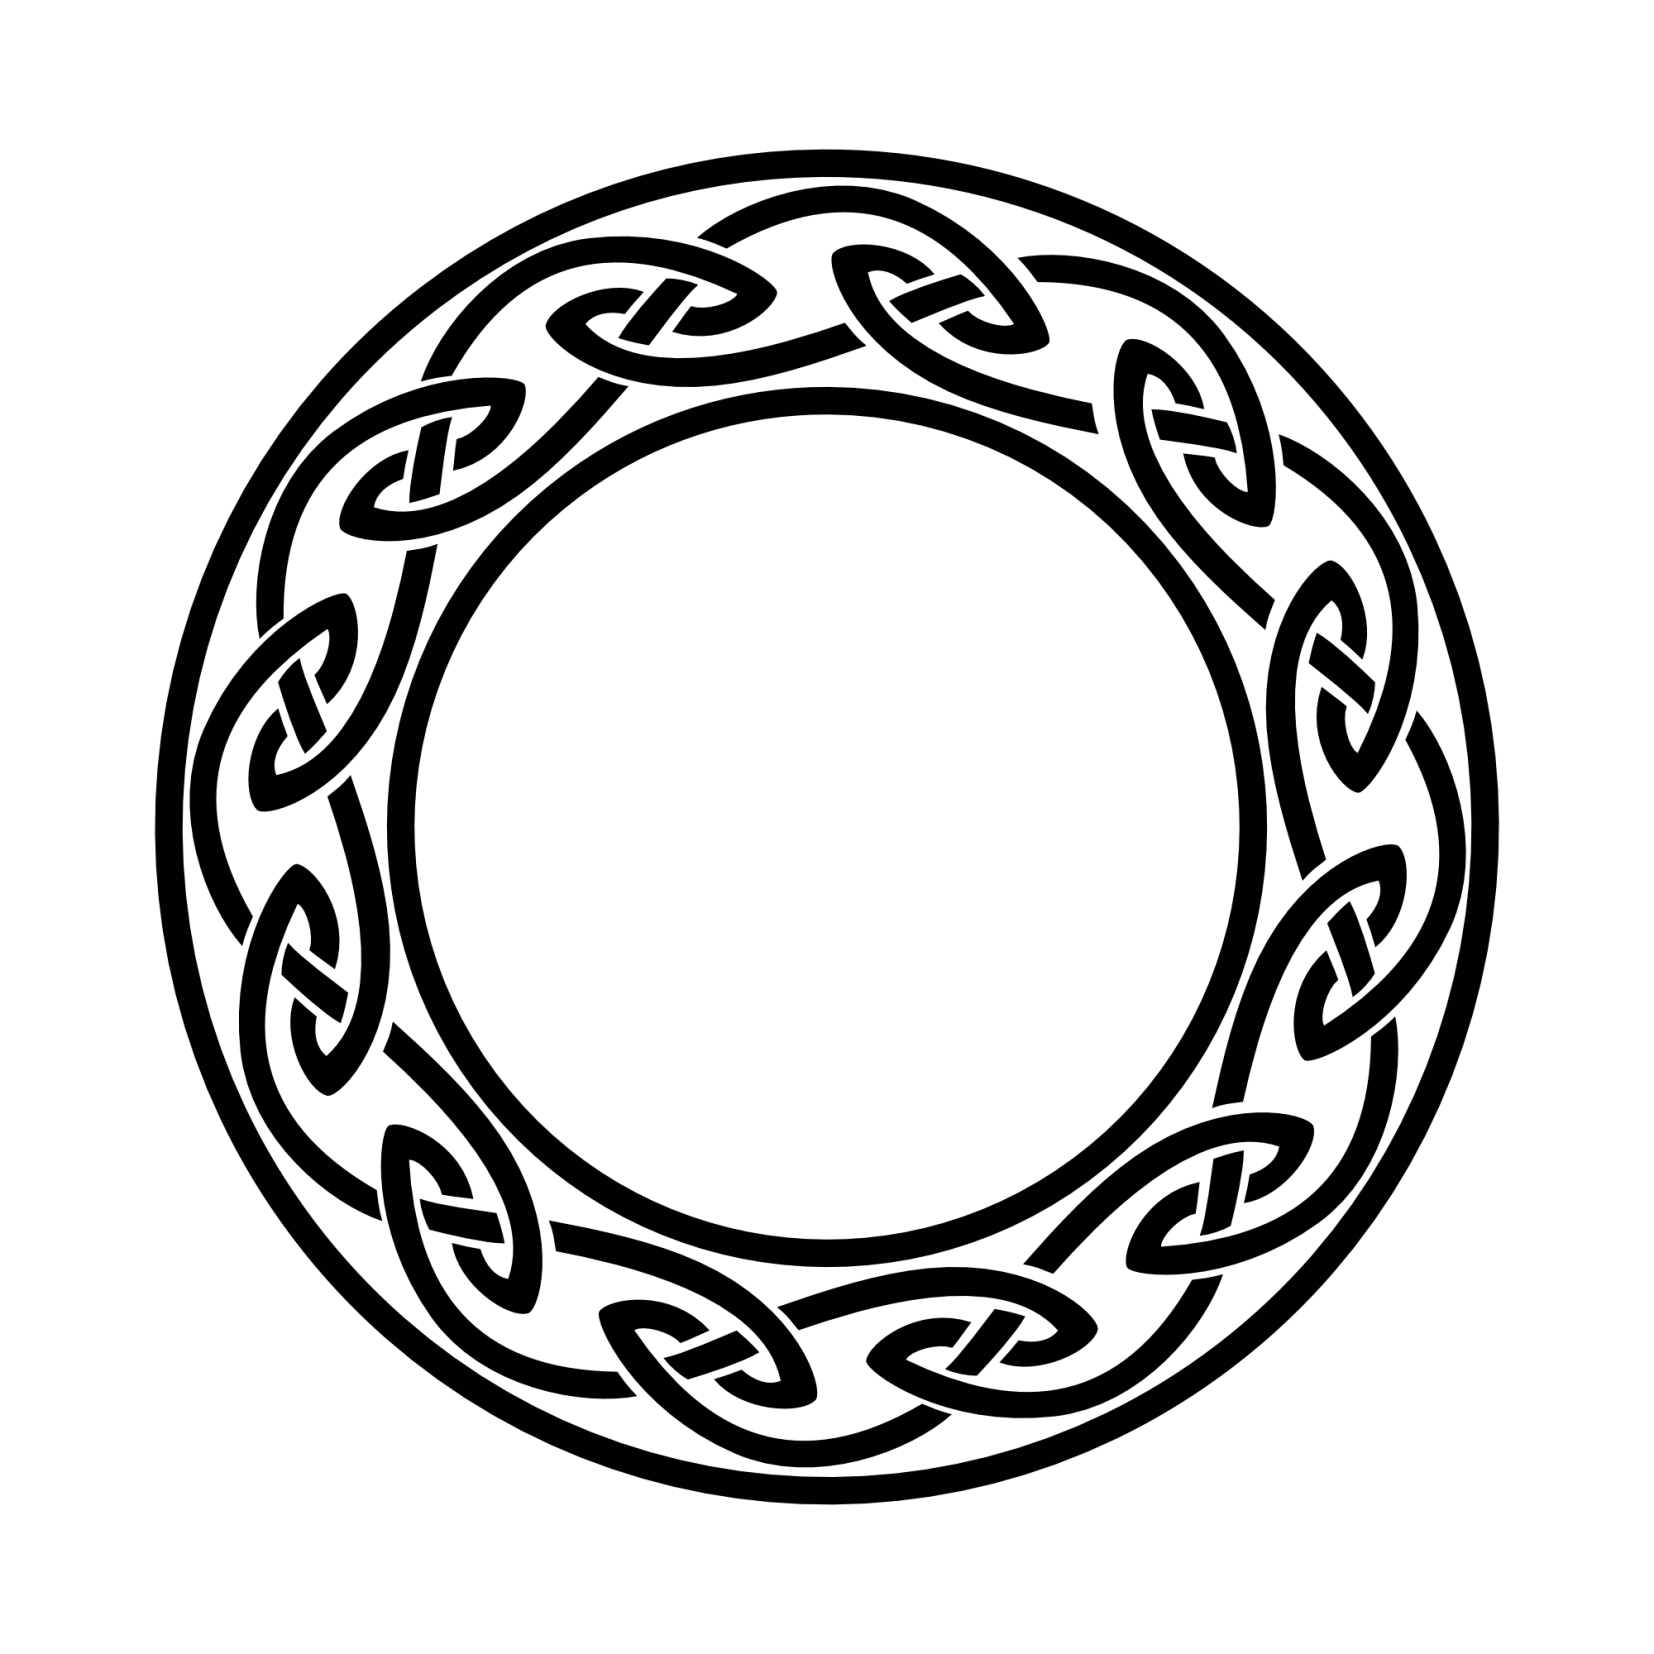 Celt clipart circle Irish png tatuaje (1654×1654) irish